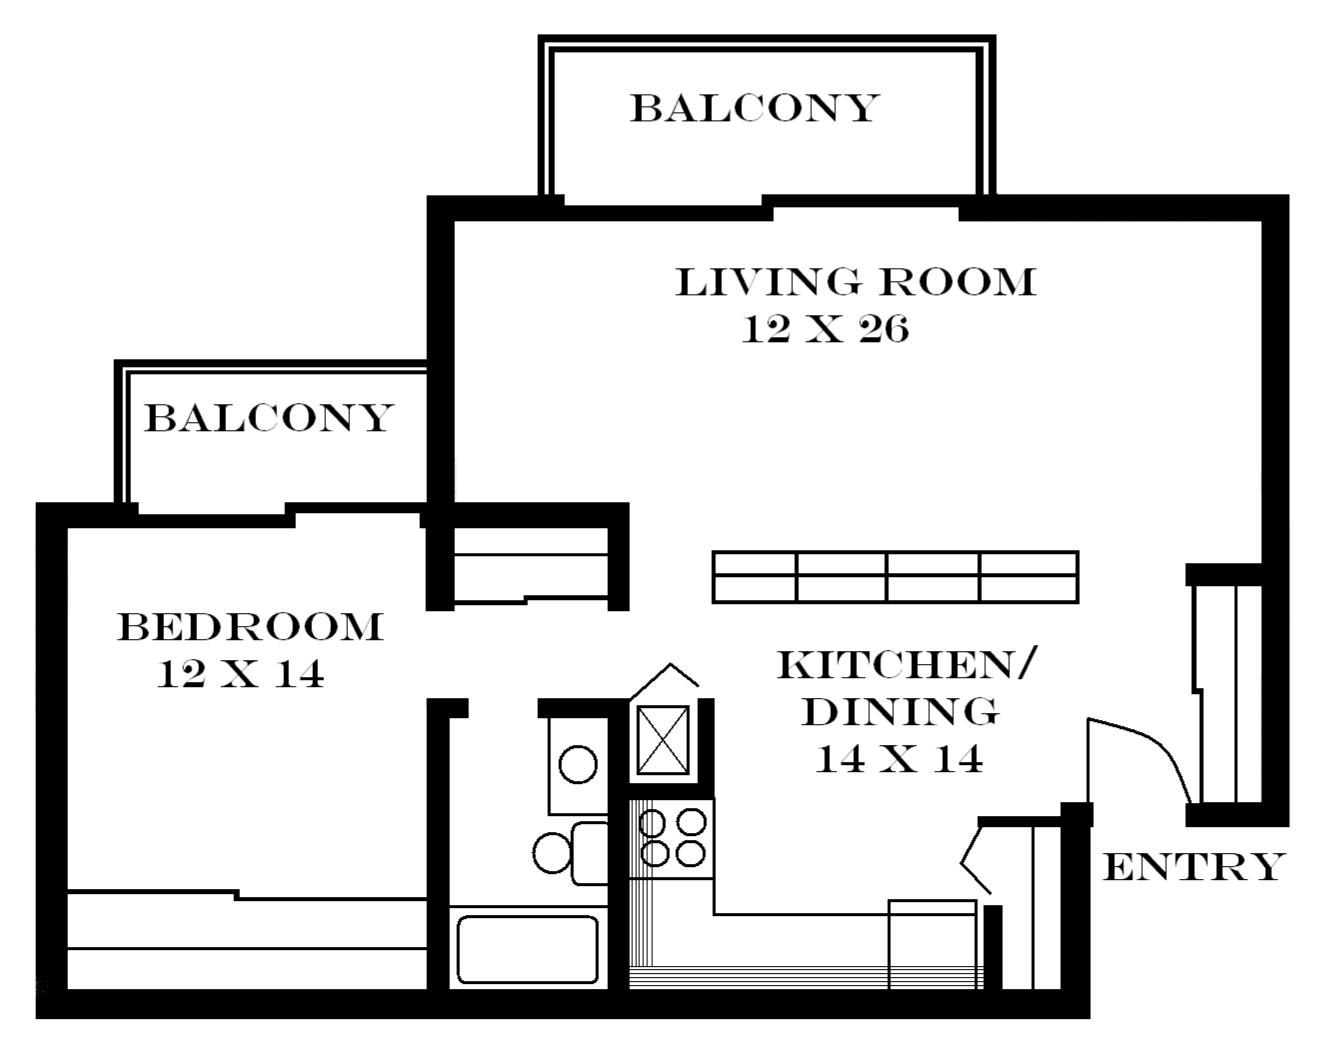 Lawrence apartments meadowbrook 2601 dover square for 1 bedroom apartment plans